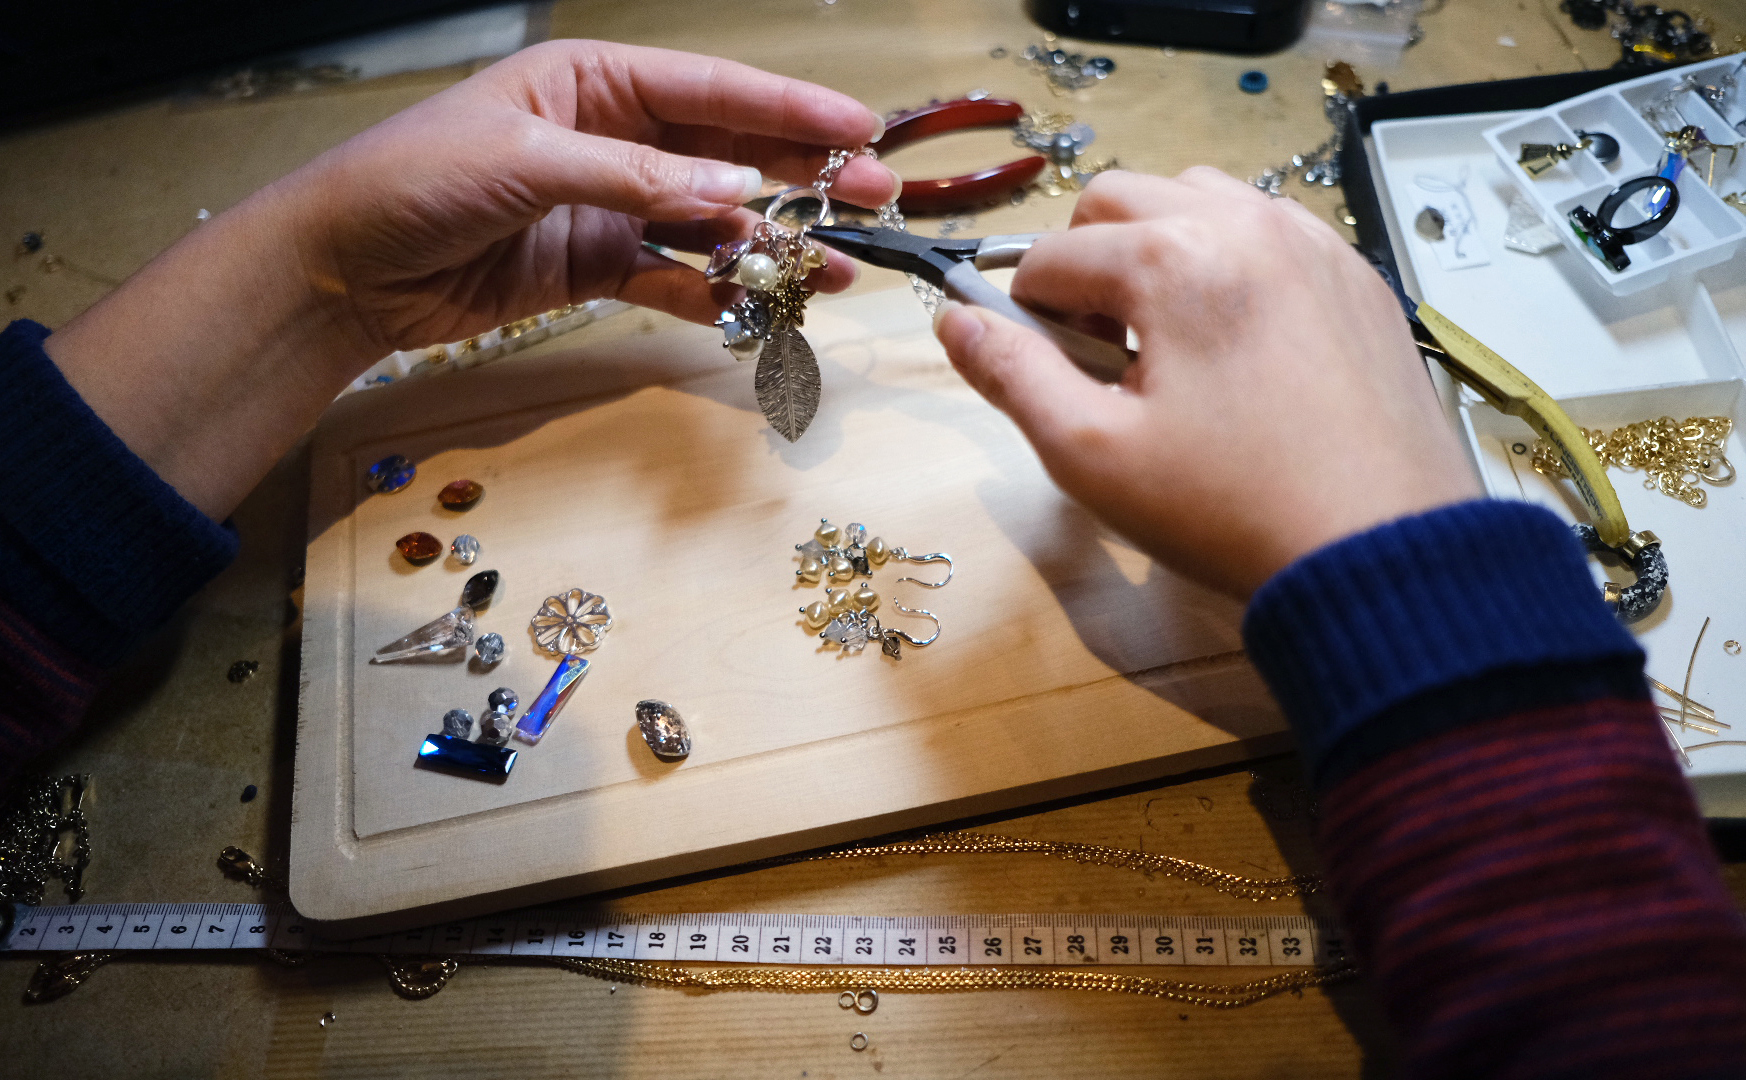 Immersive Jewellery Making Experience with Nadia Minkoff London by Nadia Minkoff London - crafts in London